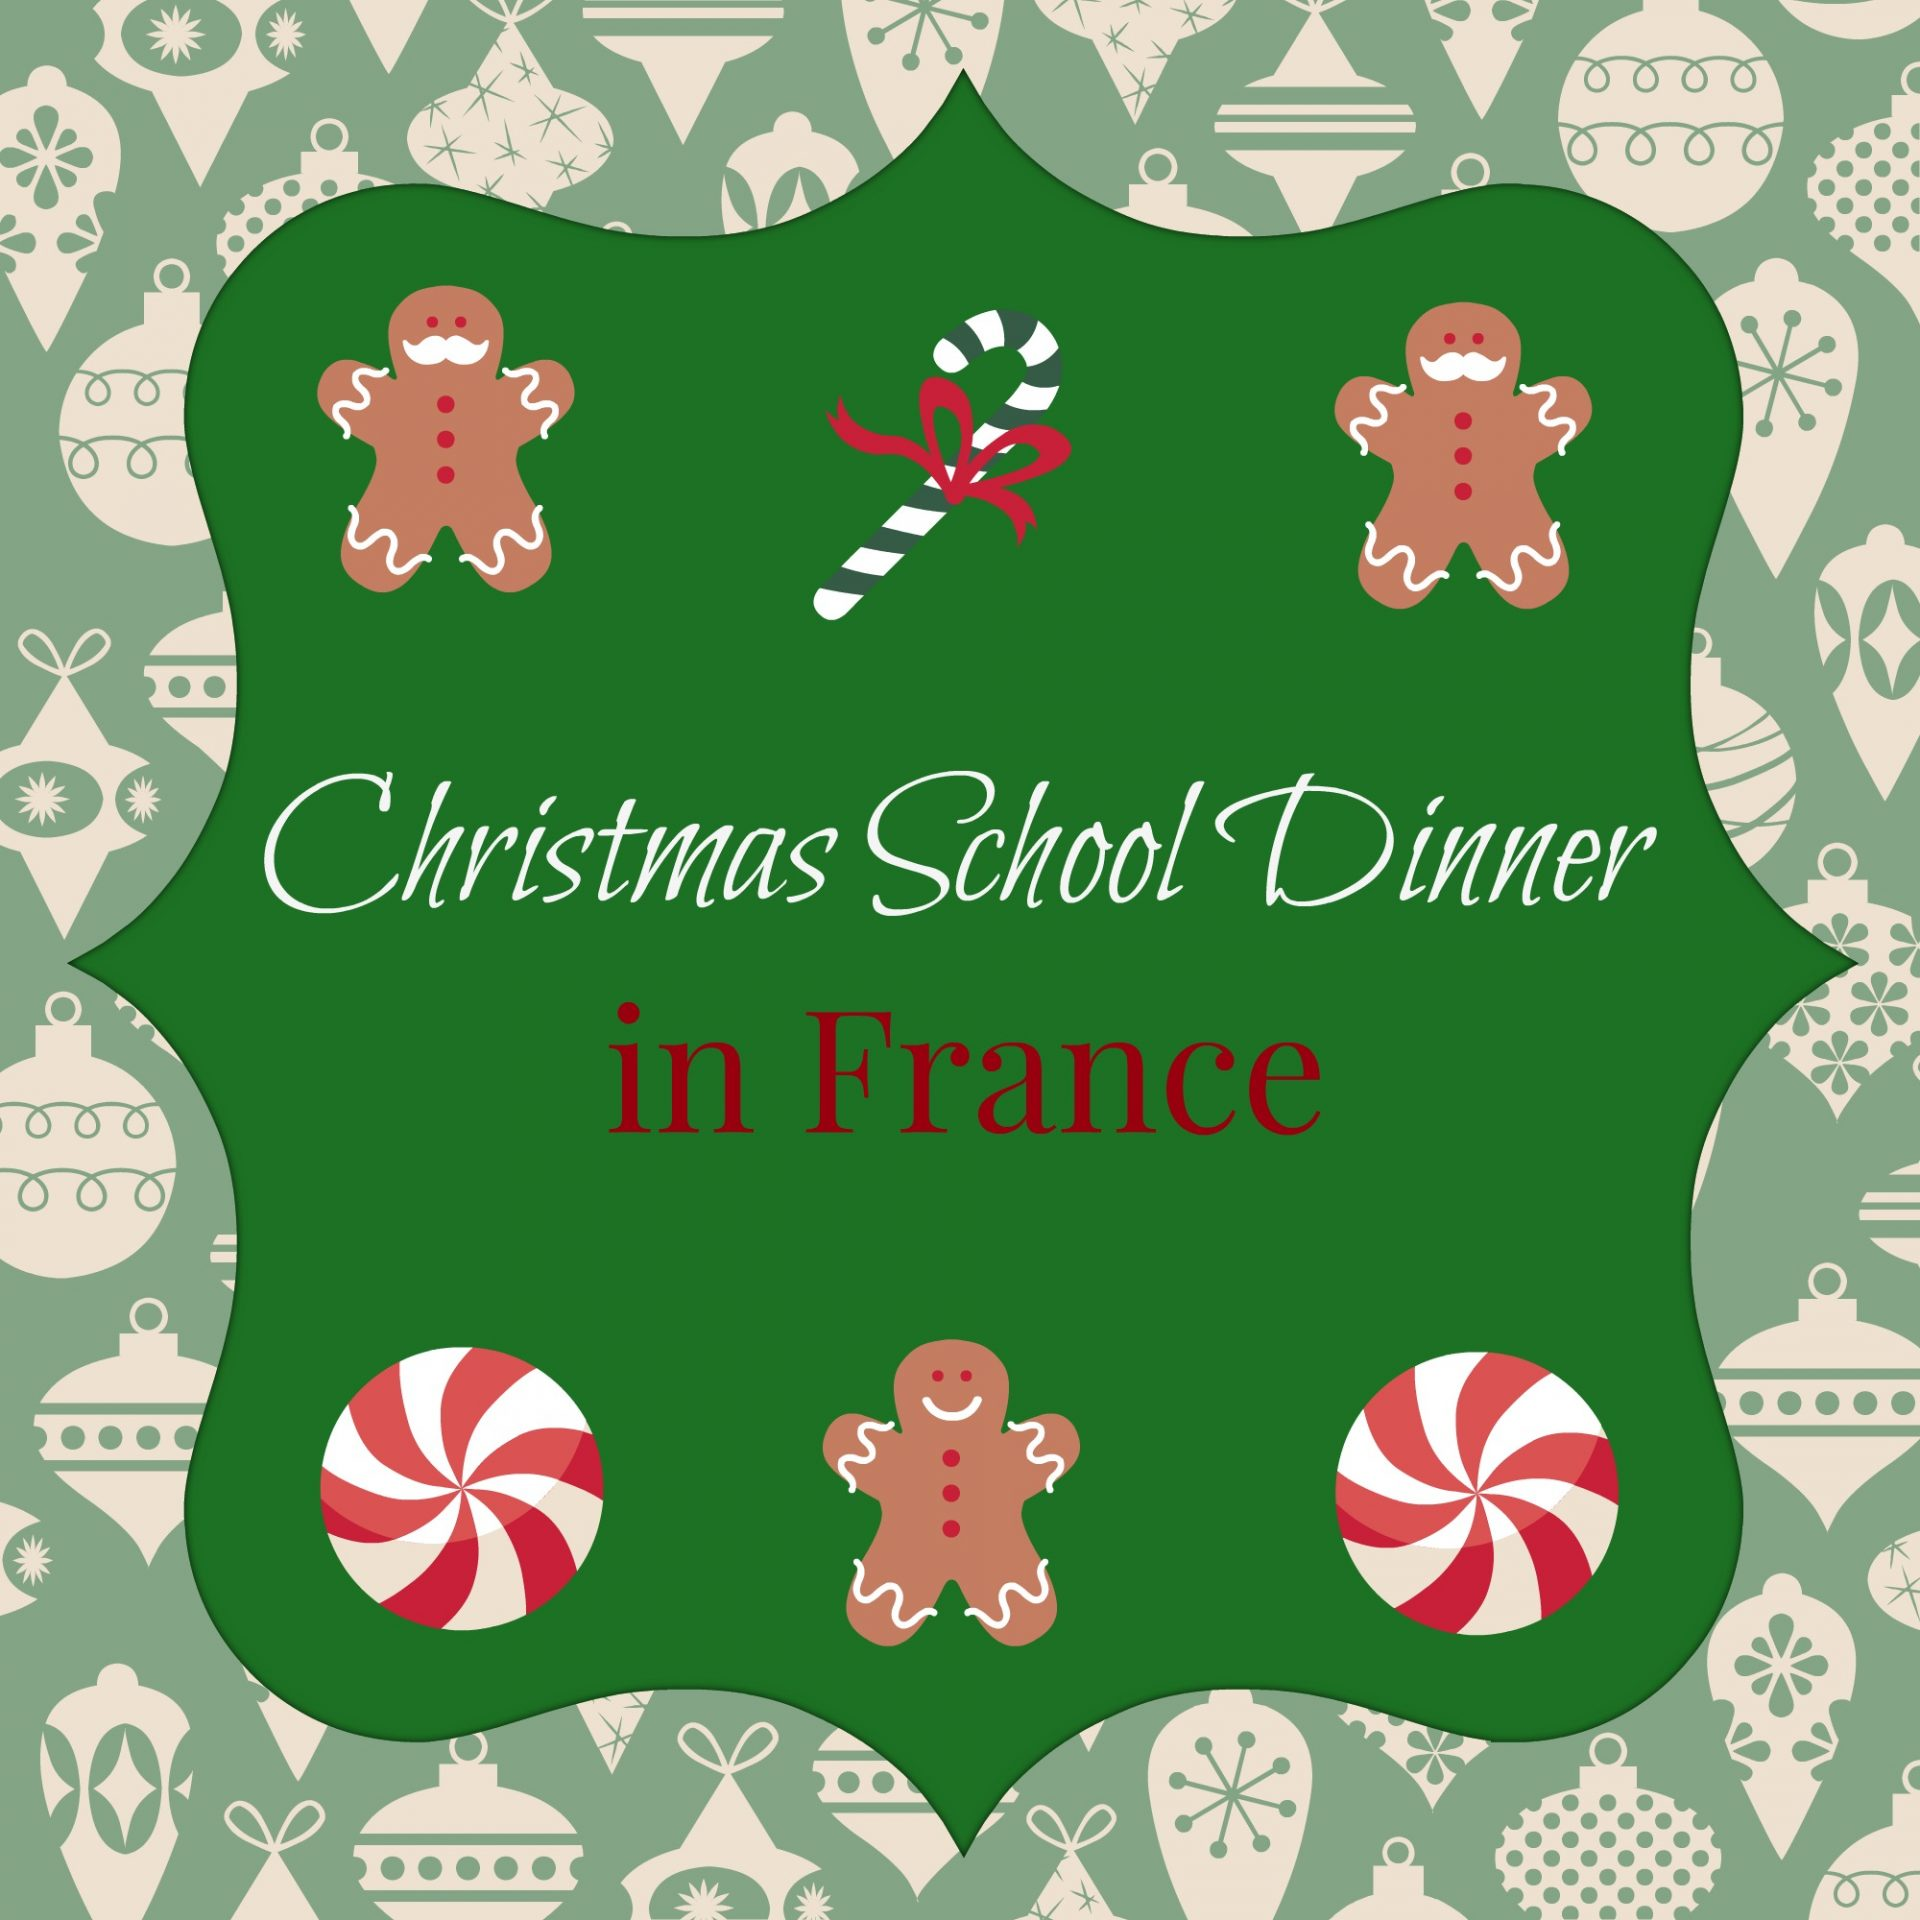 School Christmas Dinner in France